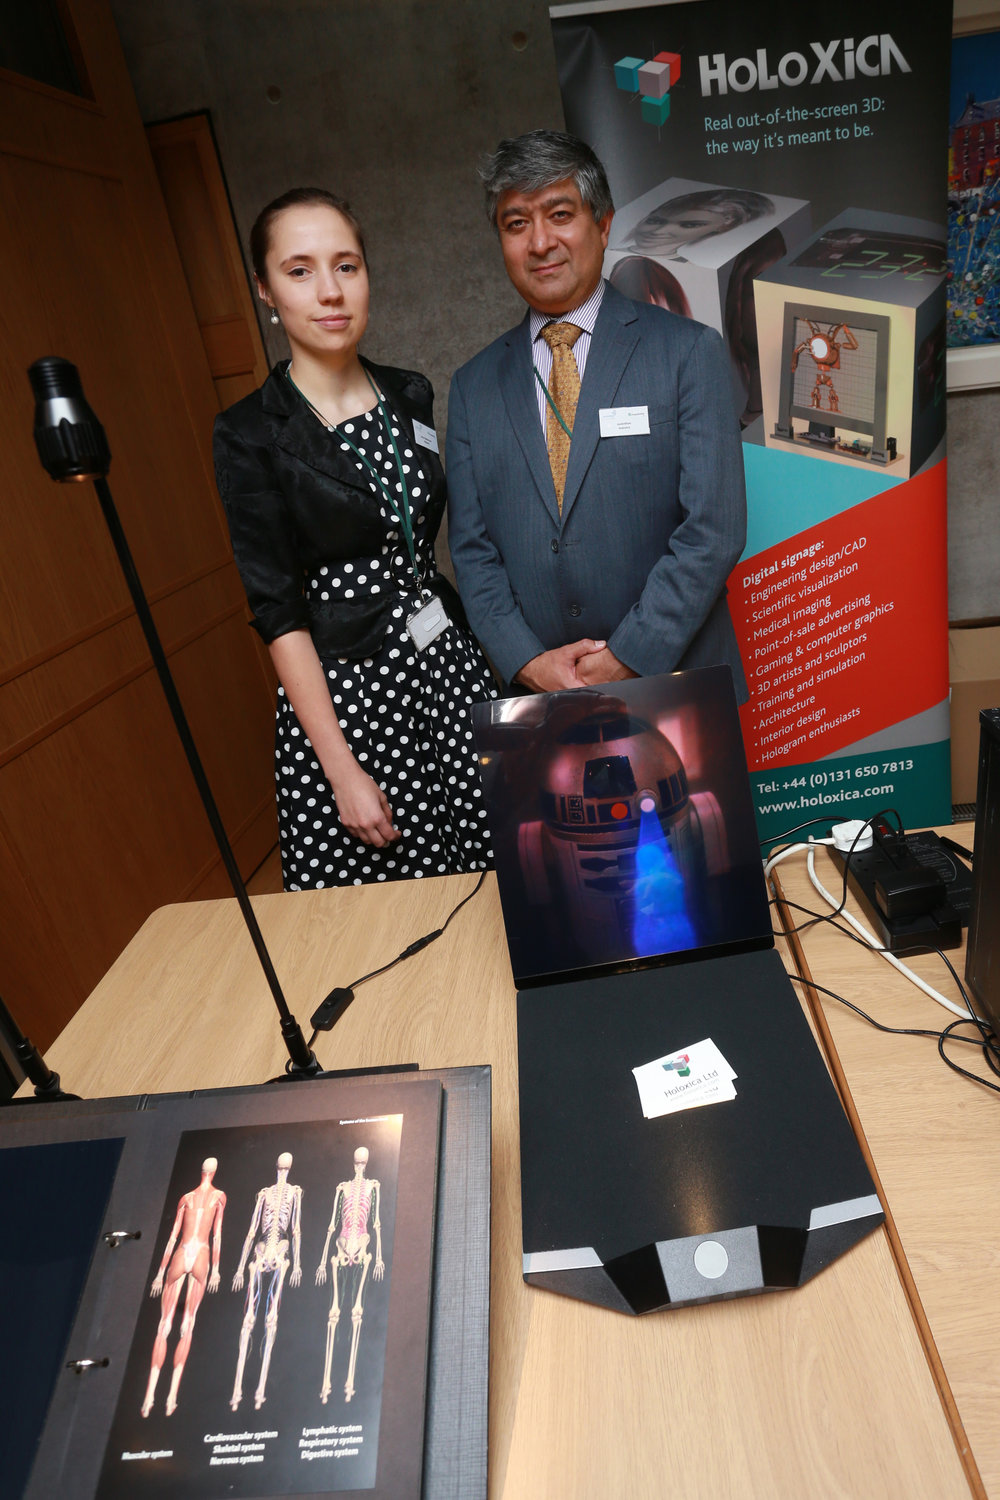 Anna and Javid from Holoxica, showing their digital holograms. Photo courtesy of Technology Scotland.